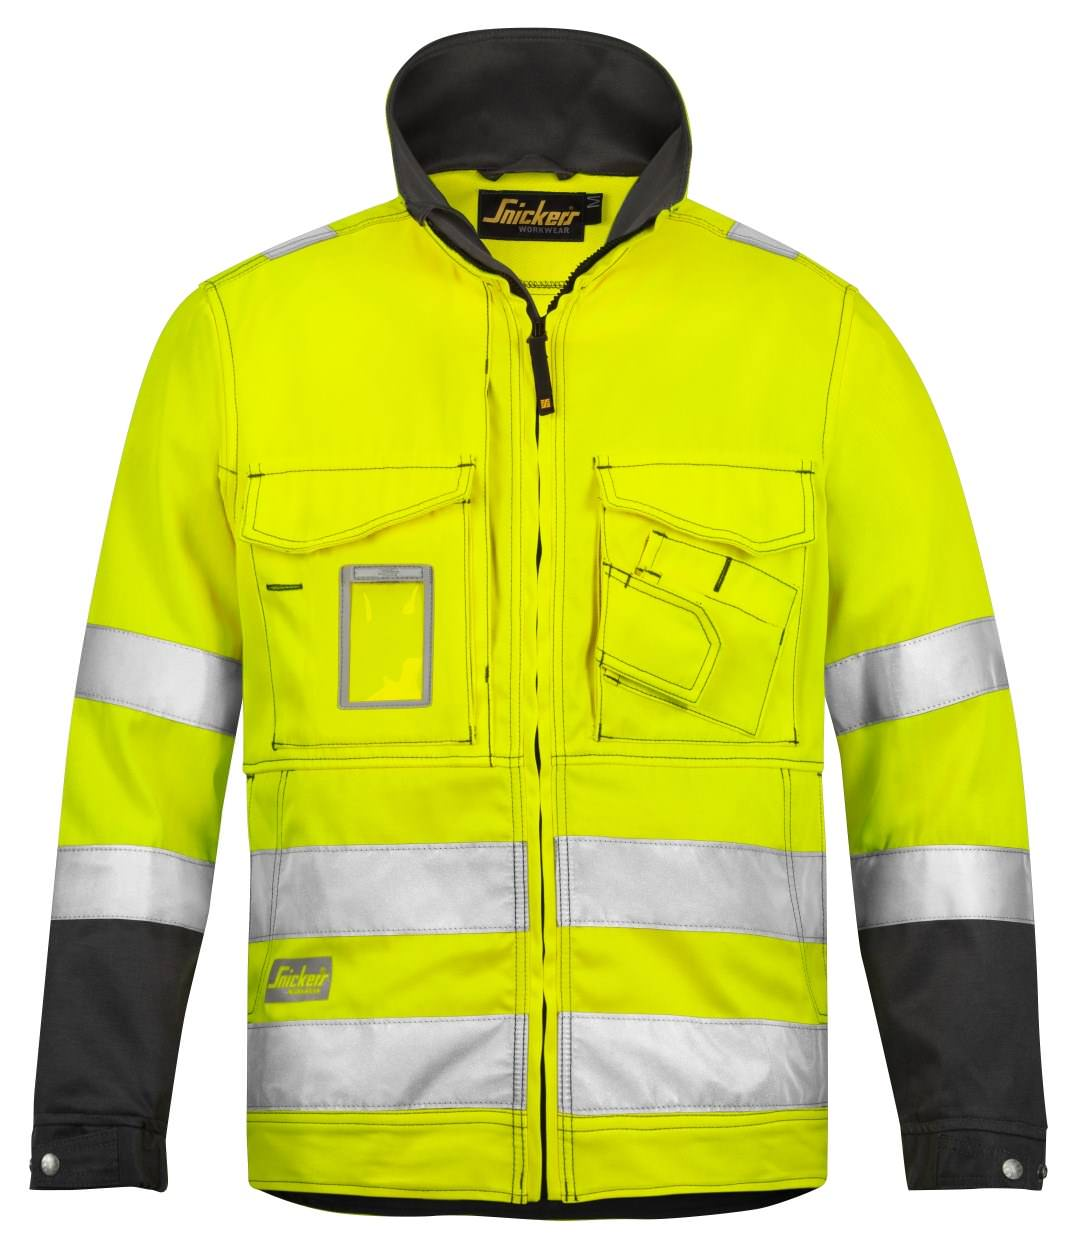 Snickers 1633 High-Vis Jacket, Class 3